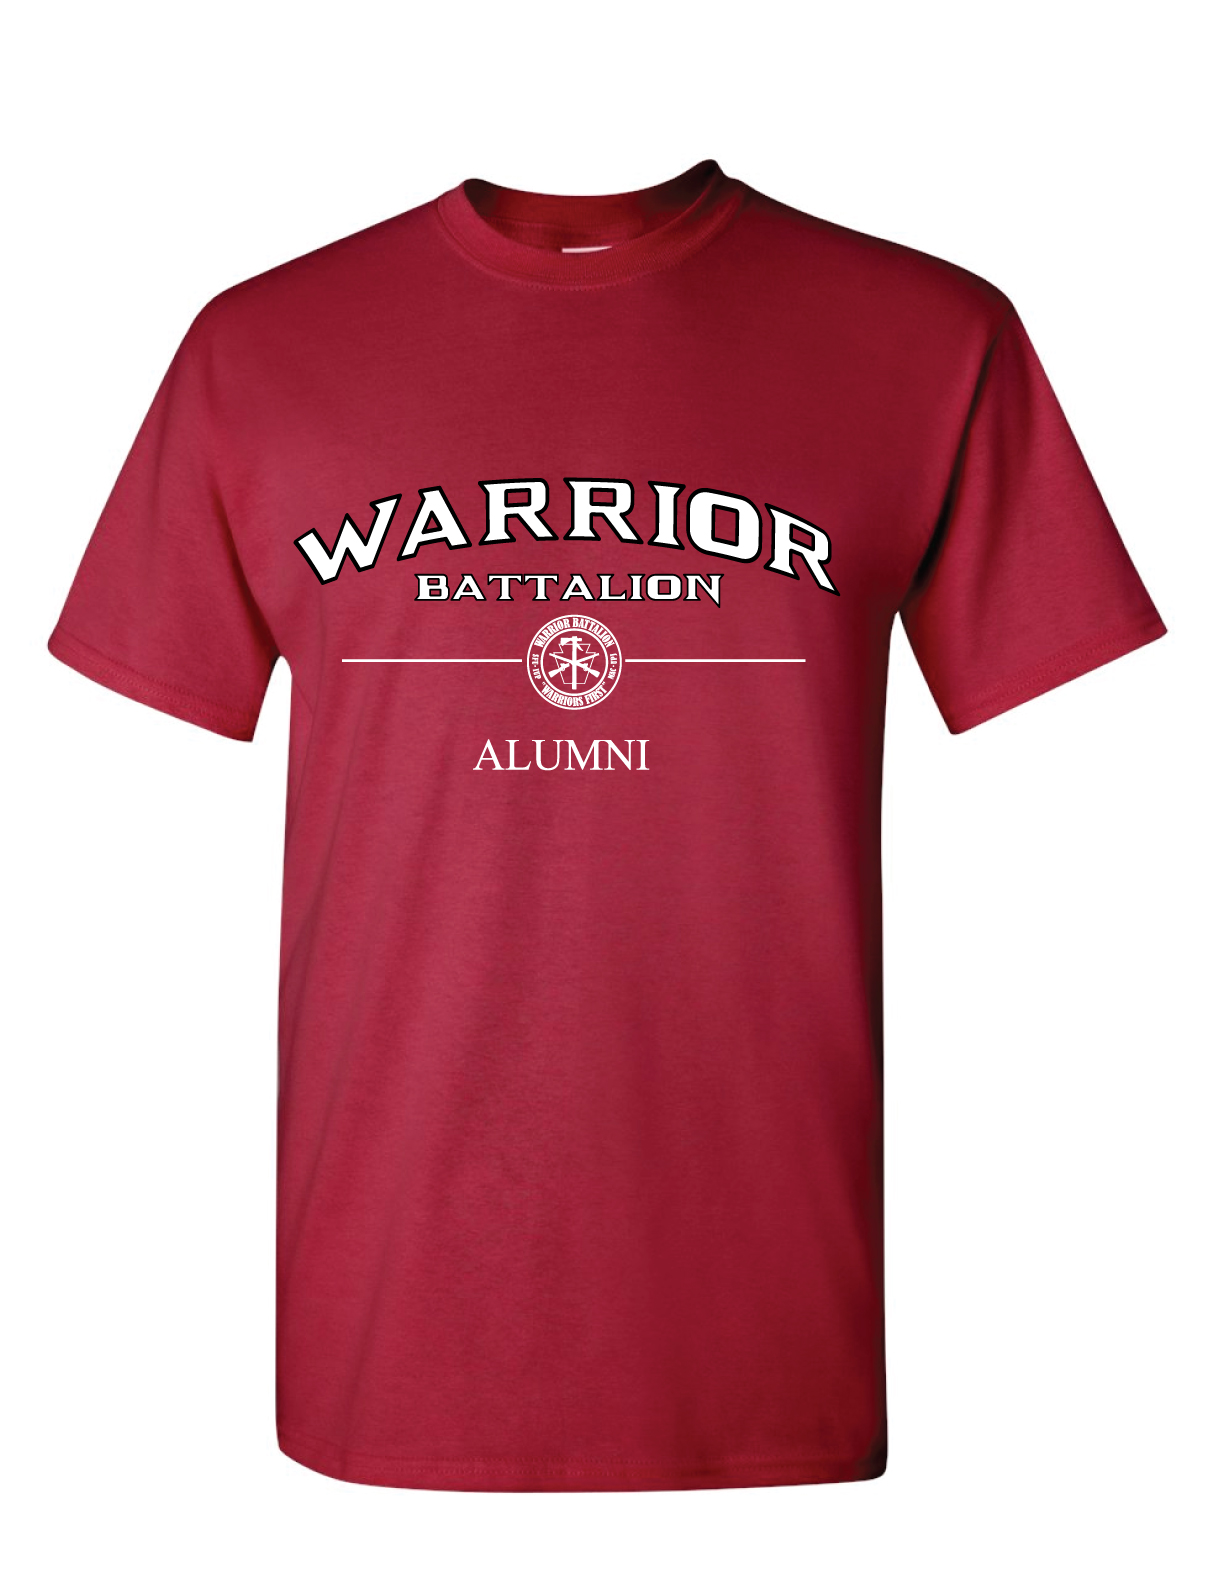 T-Shirt, Cardinal Red (Alumni)